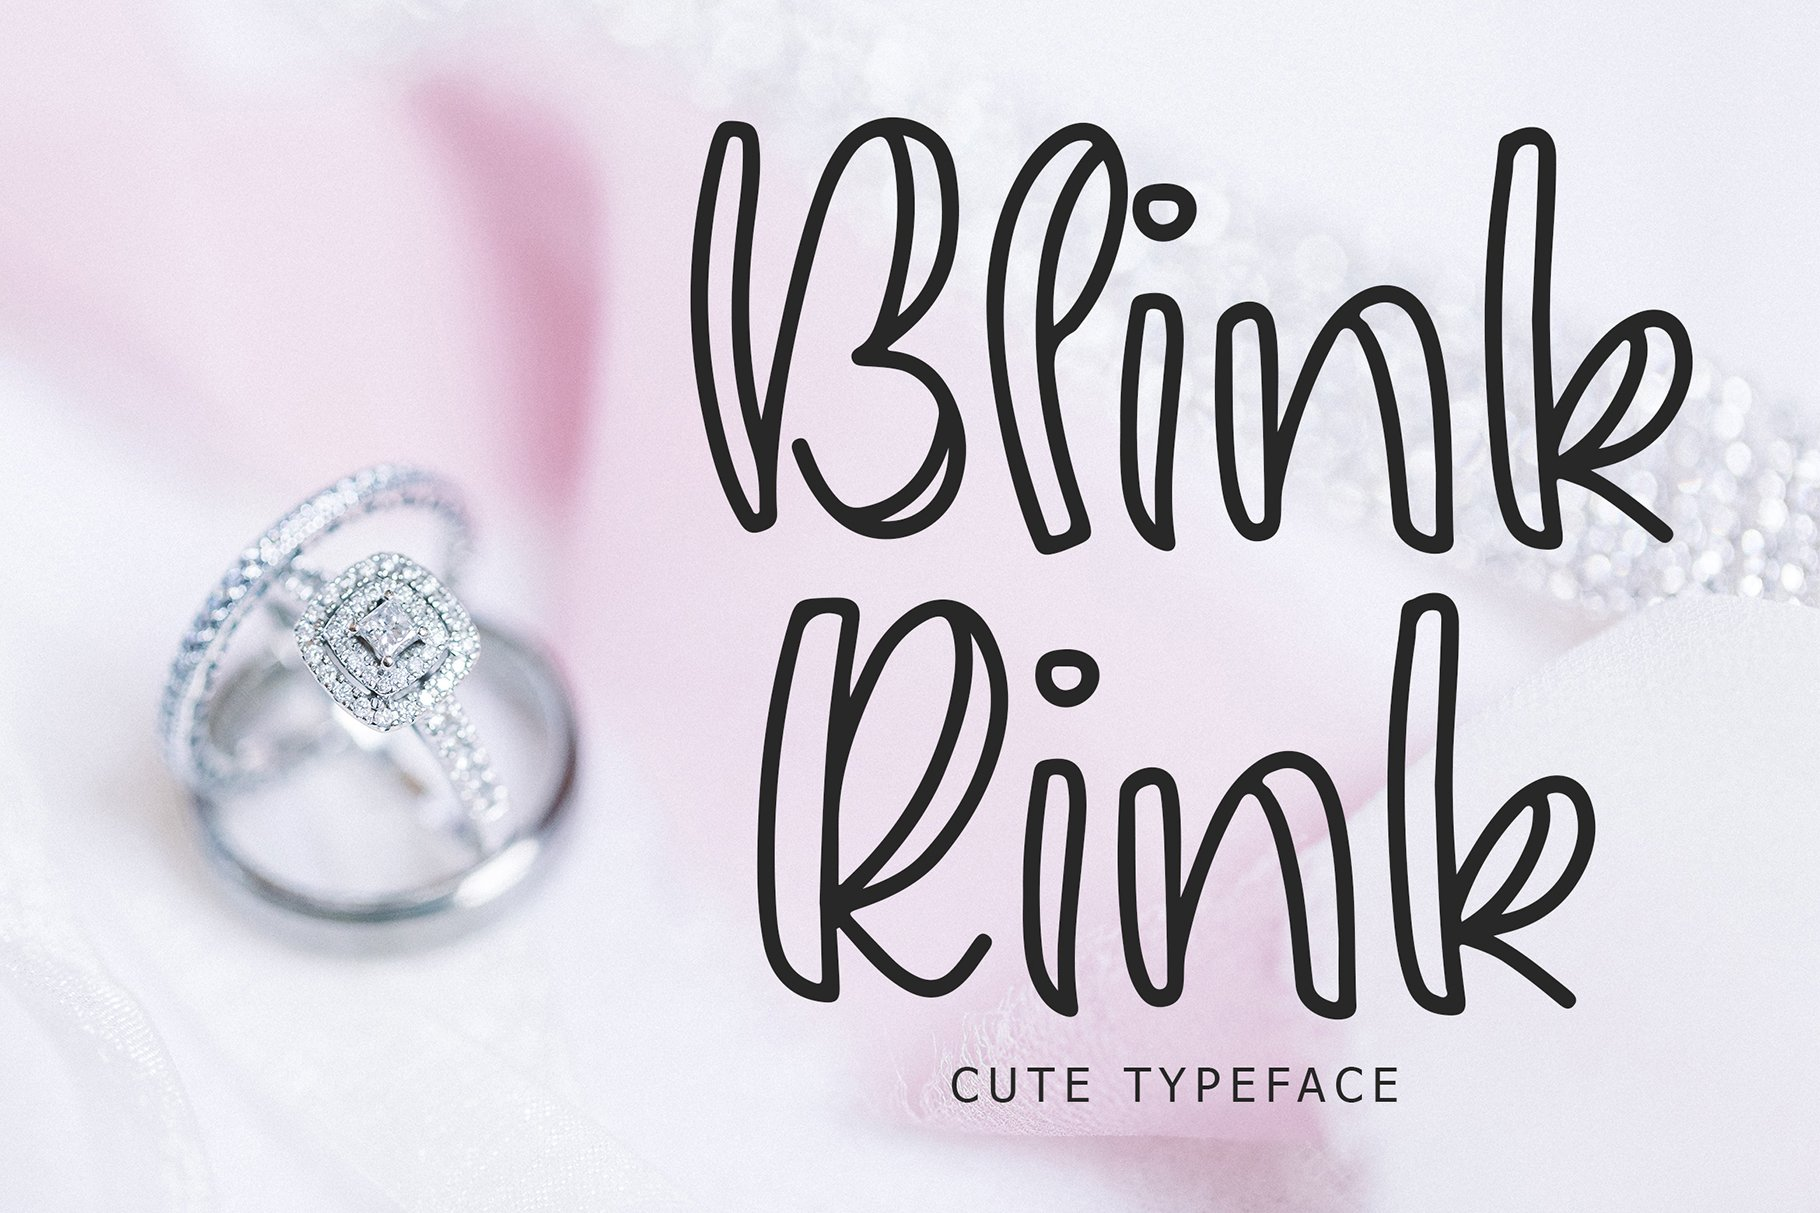 Blink Rink Cute Typeface example image 1